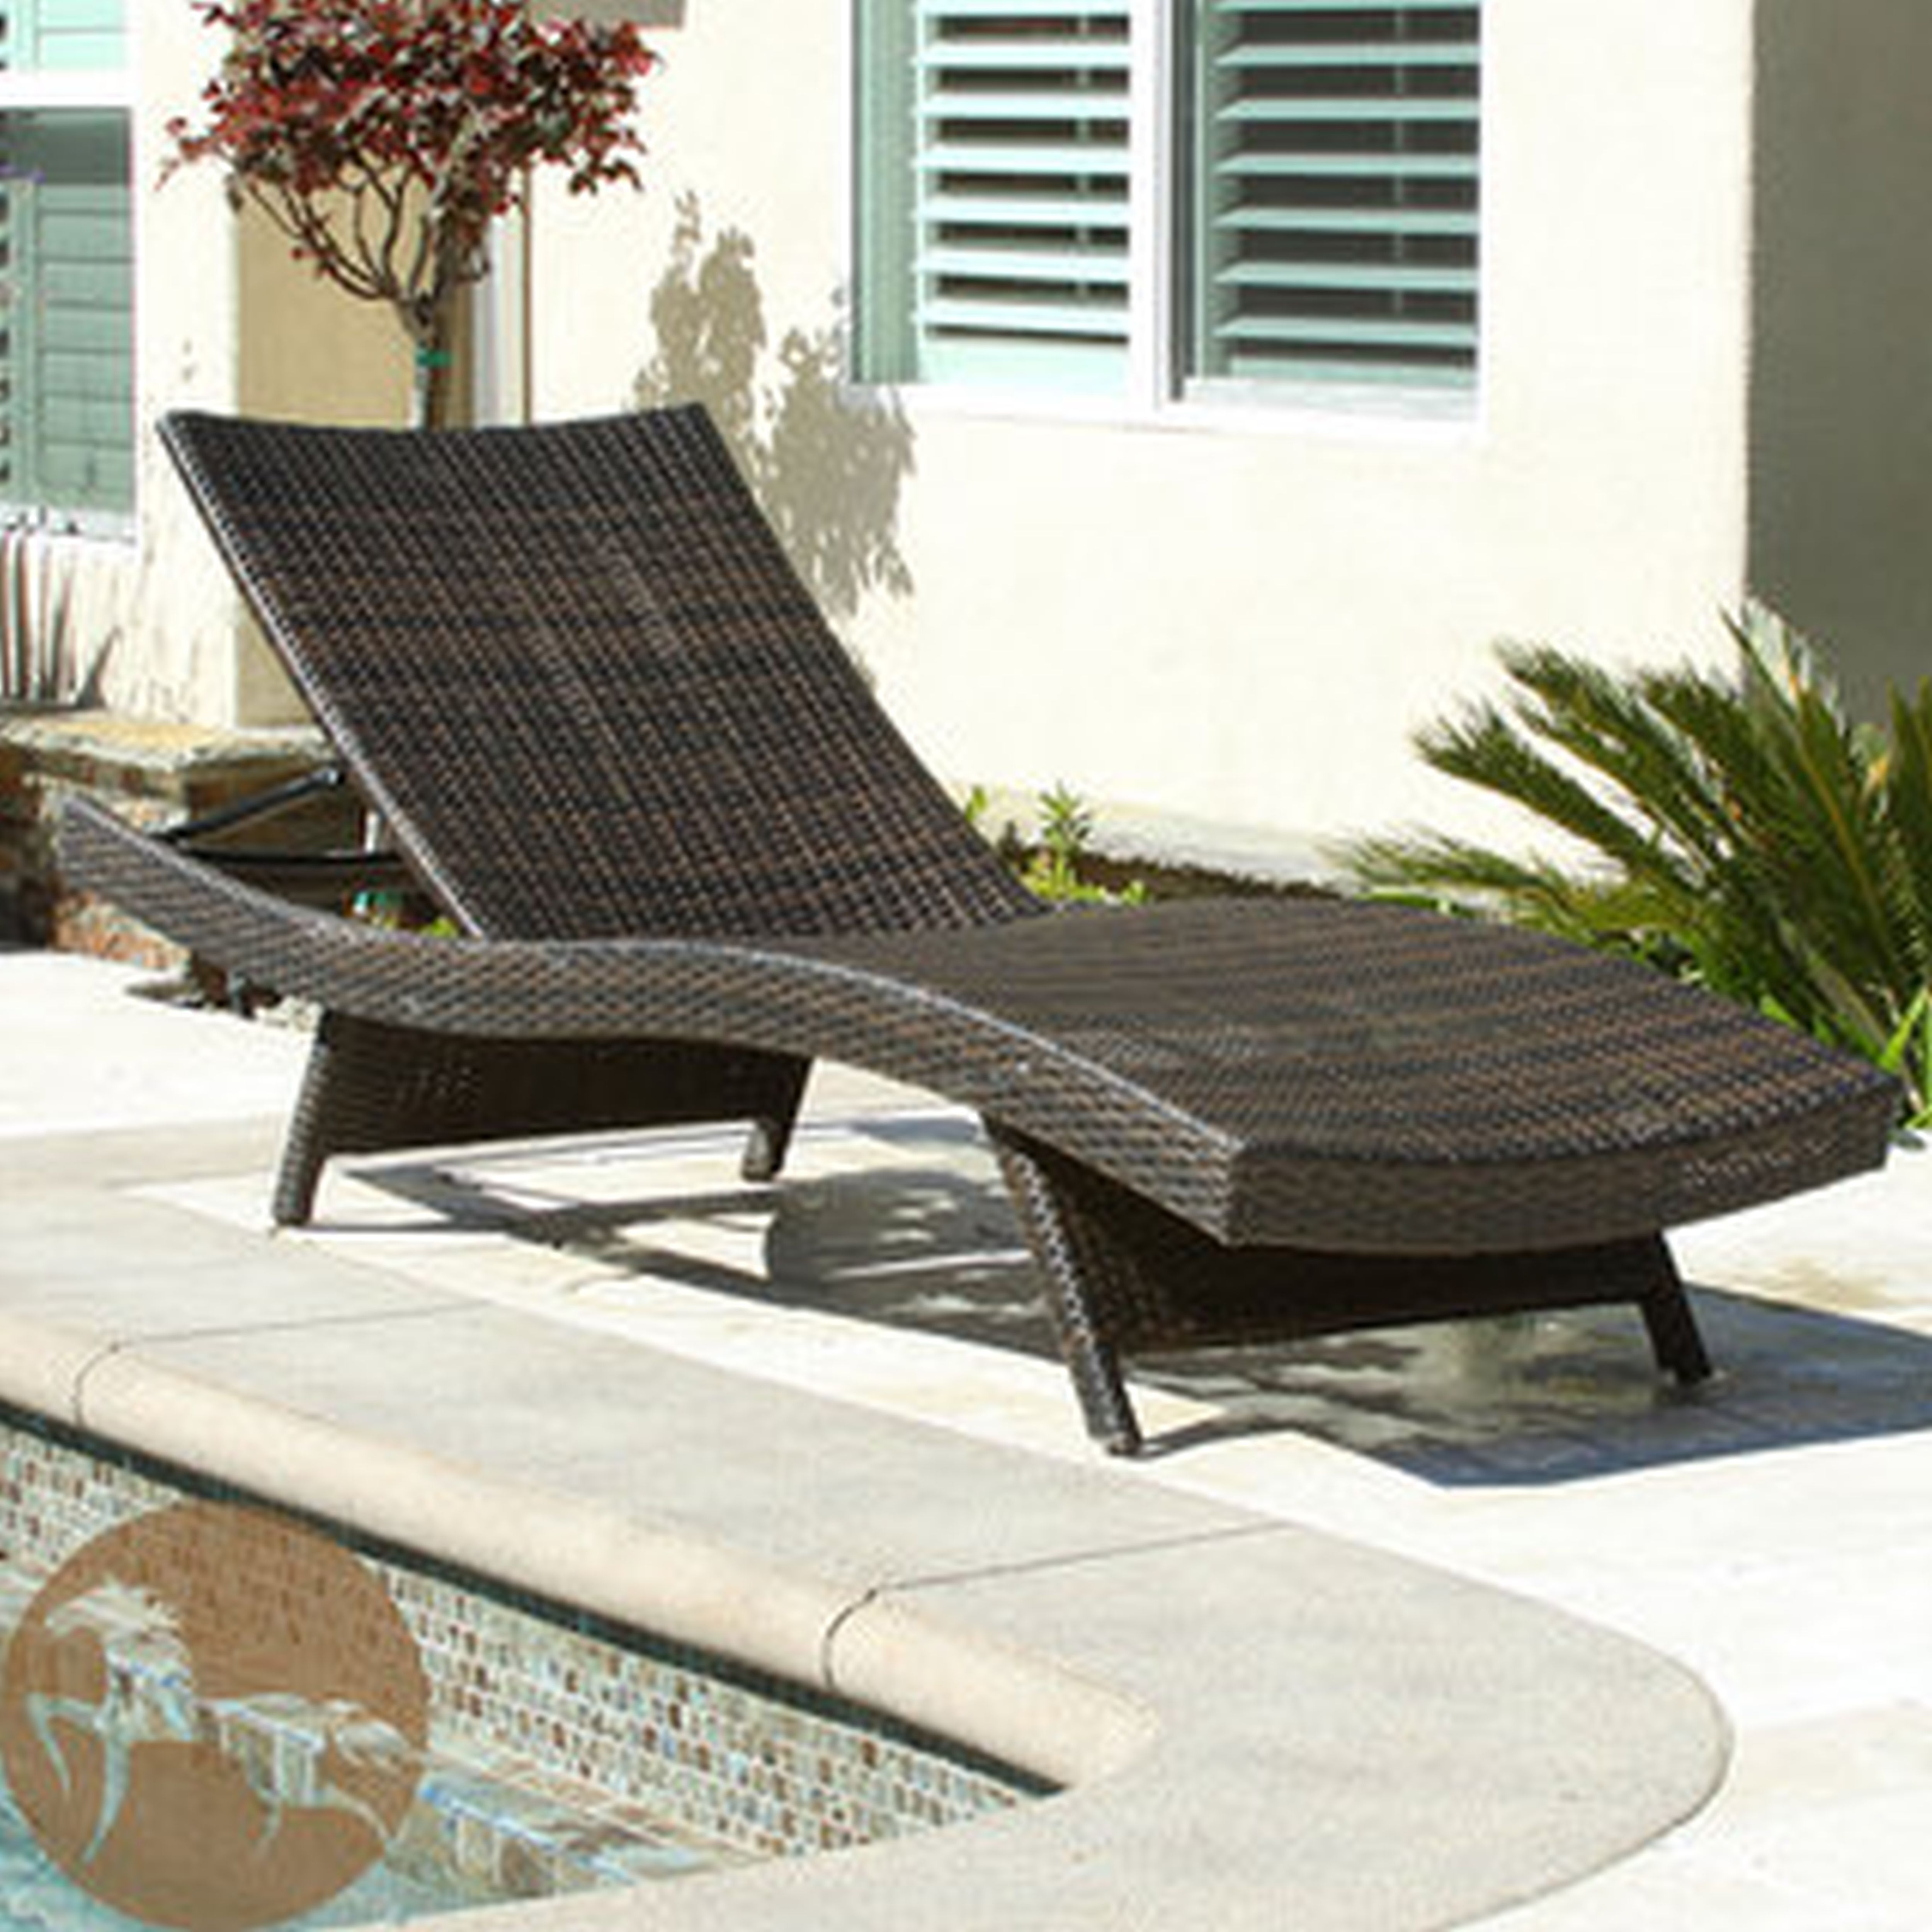 in cfm living round mosaic solita belham outdoor bistro hayneedle table product furniture contemporary